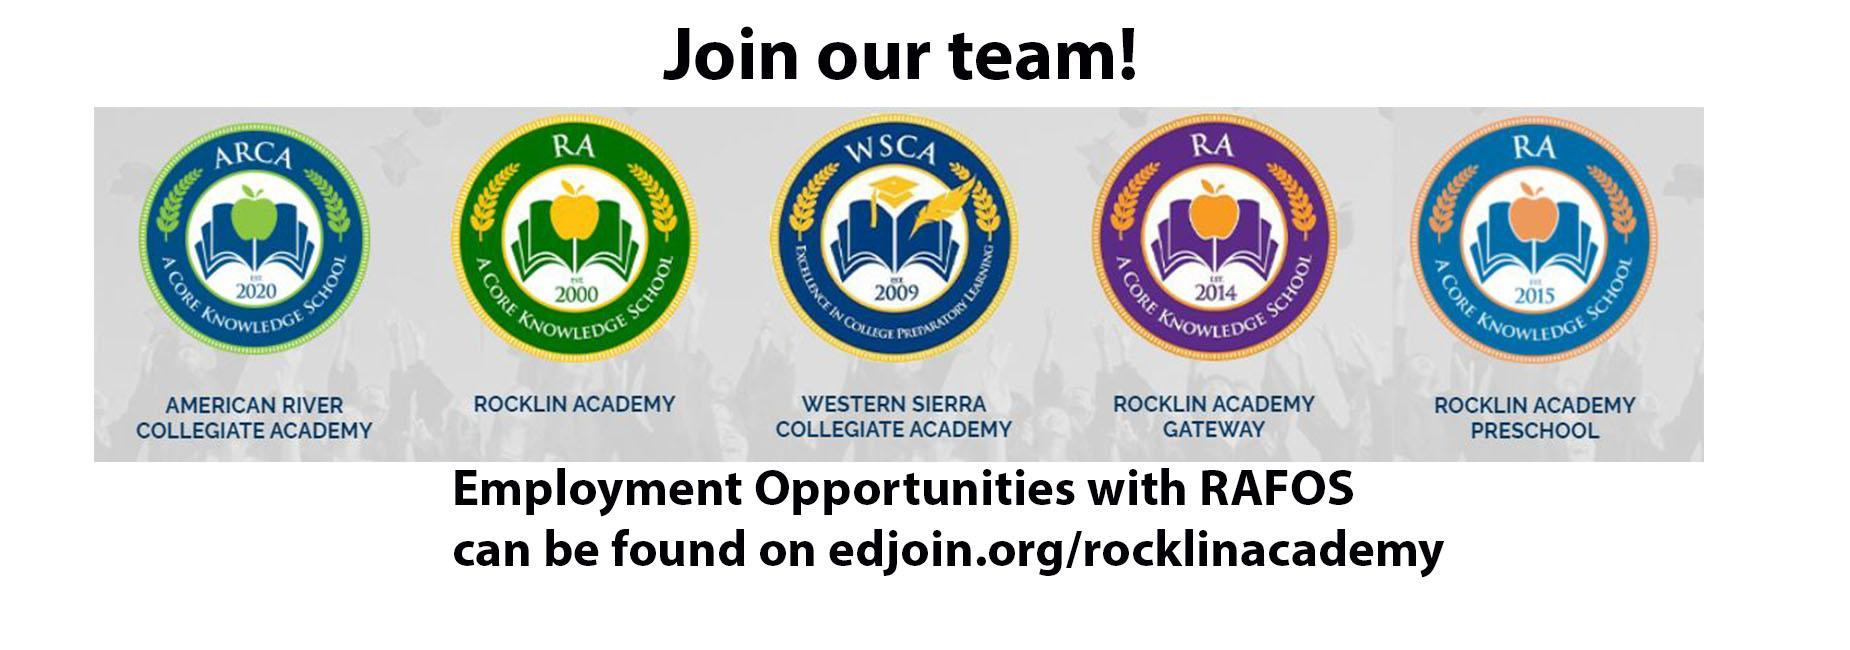 join our team at edjoin.org/rocklinacademy